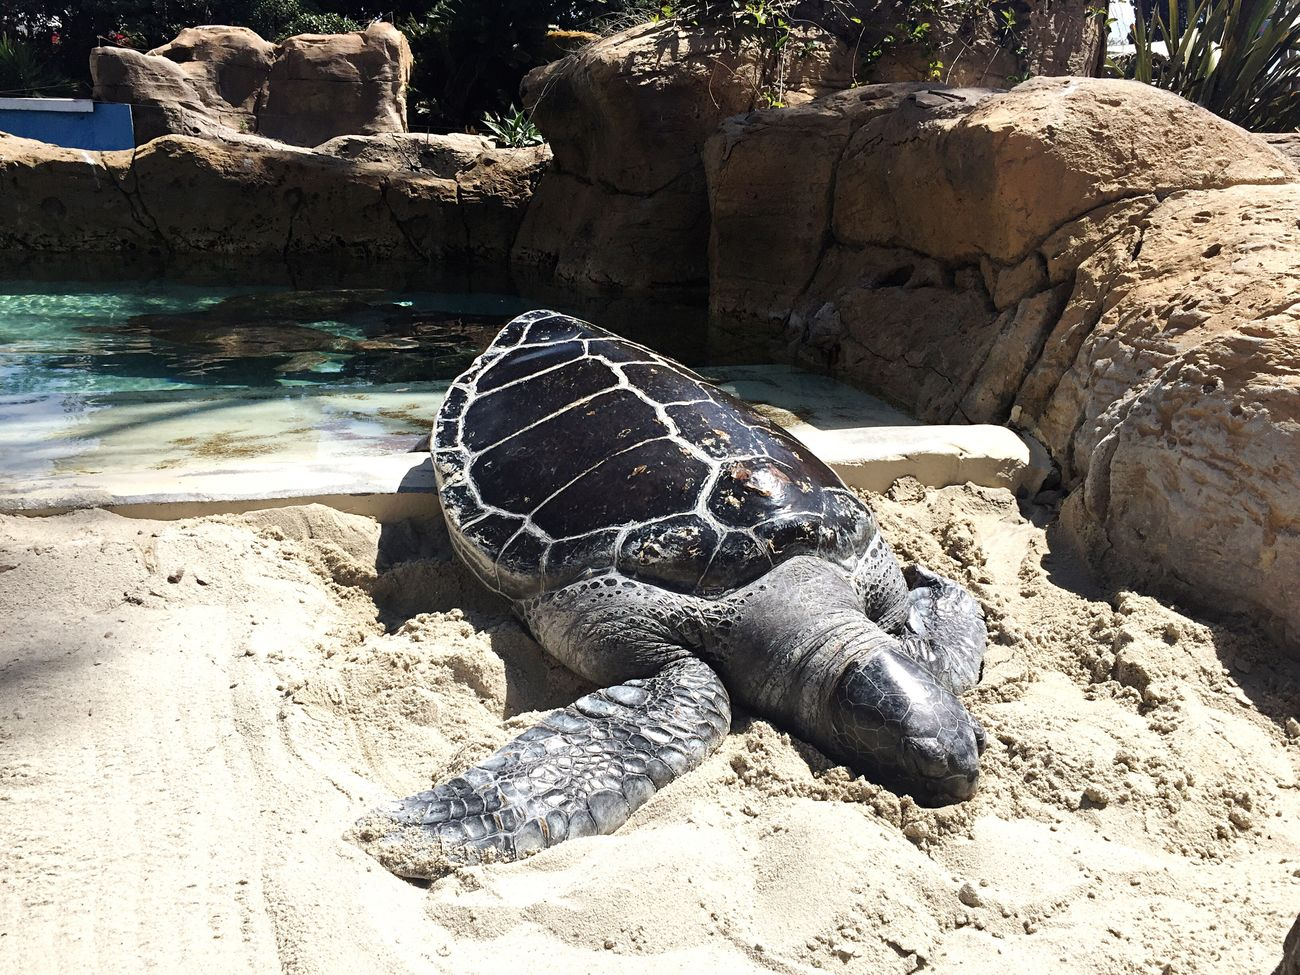 At SeaWorld in San Diego, CA Animal Themes One Animal Animal Wildlife Rock - Object Tortoise Tortoise Shell Nature Outdoors No People Water Day Sea Turtle Close-up Turtle AT THE ZOO Adapted To The City